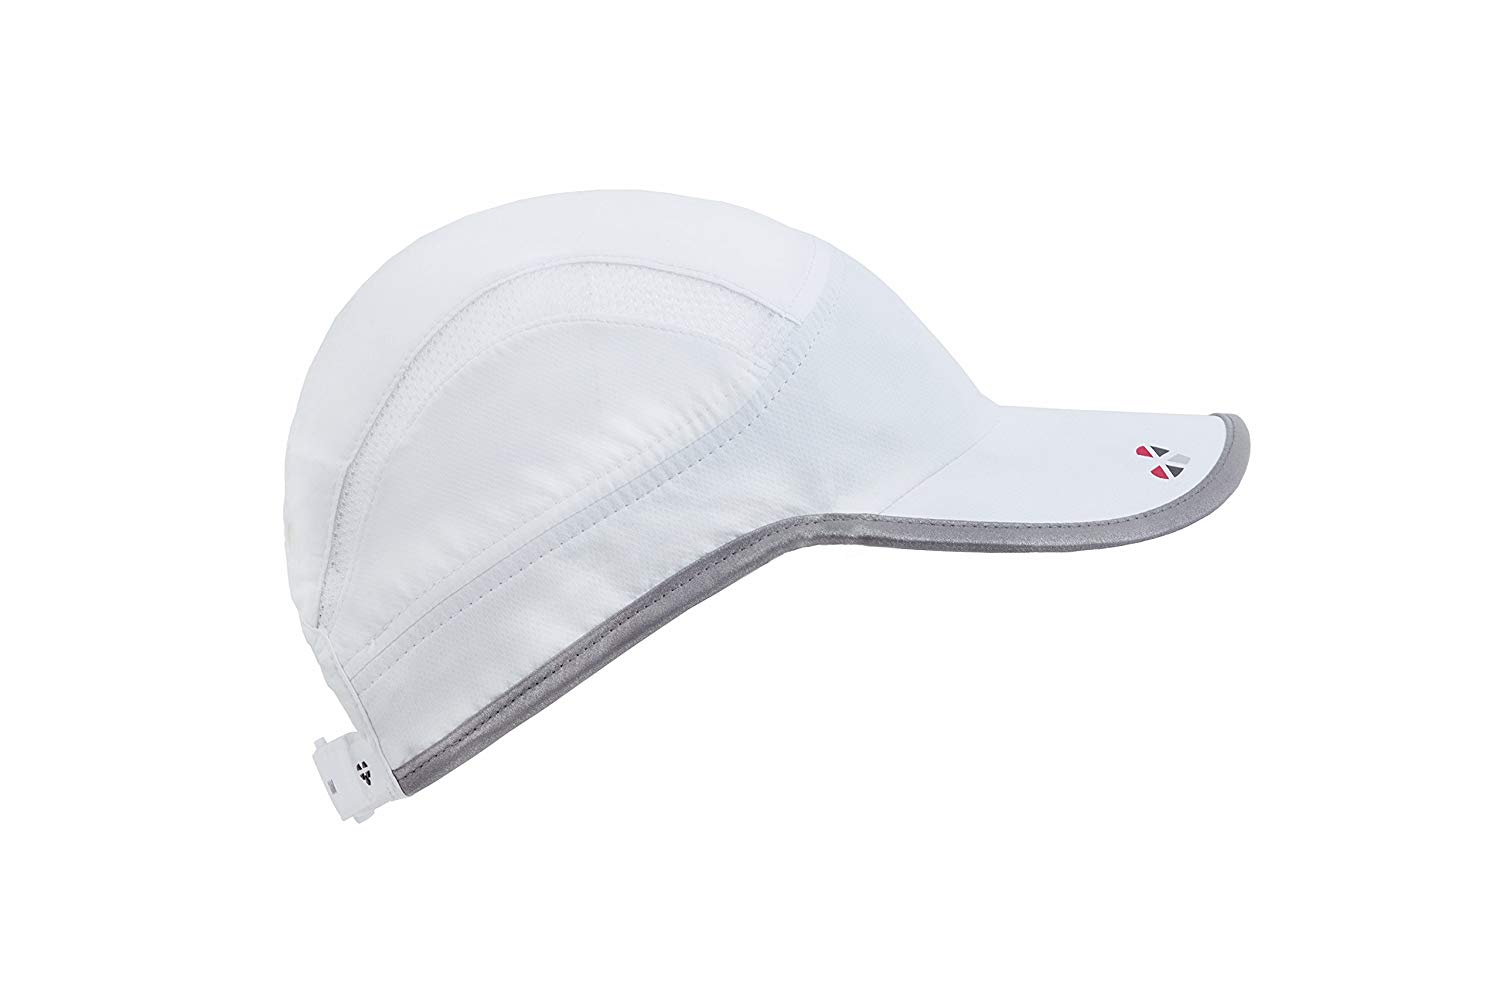 LifeBEAM Smart Hat with HR Monitor